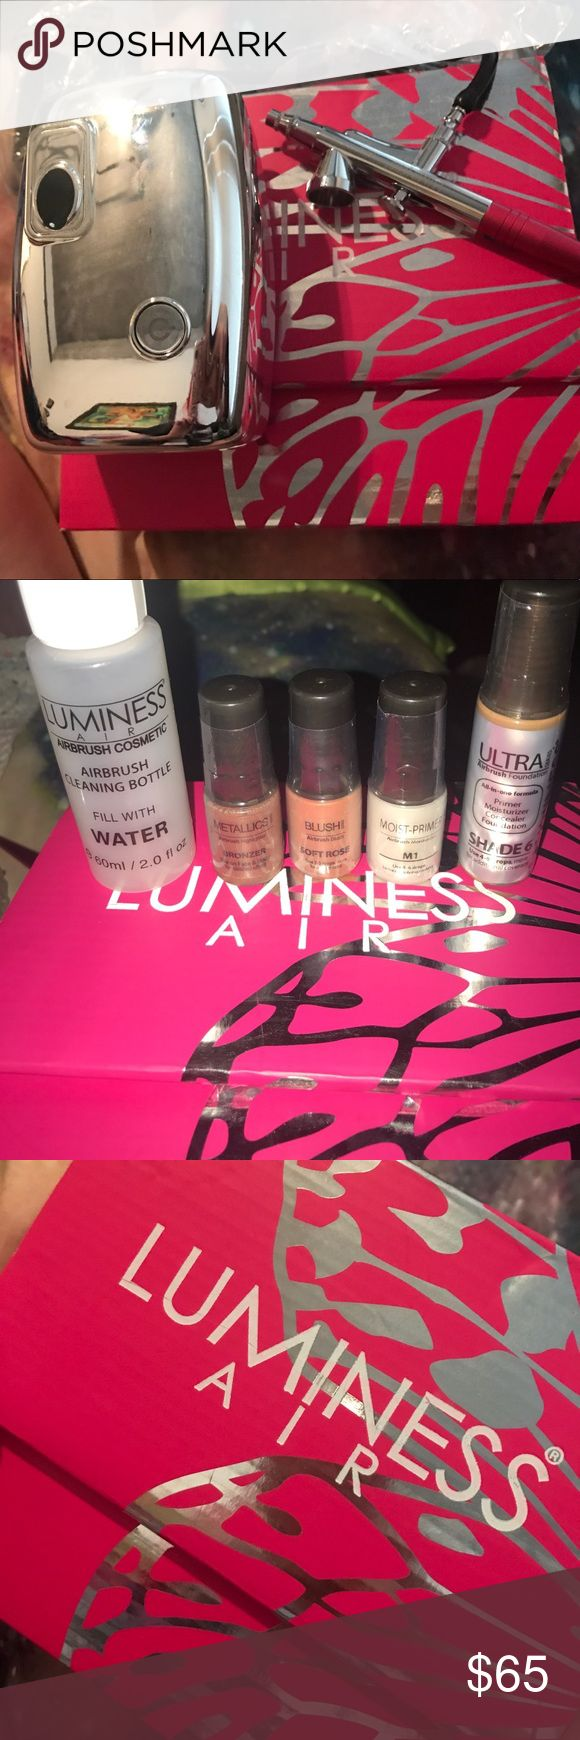 Luminess Air Brush for makeup. BRAND: Luminess Air COLOR: pink CONDITION: new. Make up air brush that has never been used. Includes: DVD, manual, air brush cleaning bottle. Bronzer, blush, moist-primer, and foundation in shade 6. Luminess Air Makeup Foundation